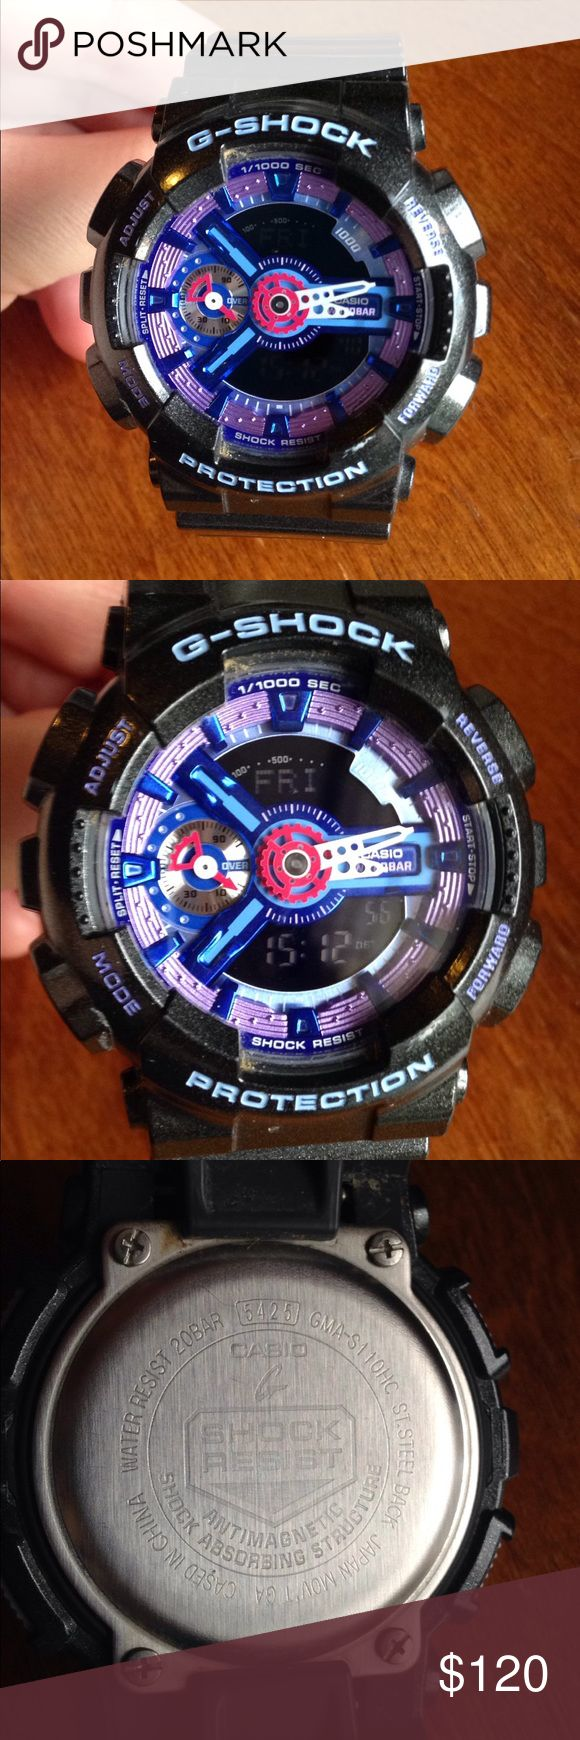 G-Shock Protection watch Like-new G-Shock Protection watch. Water resist 20Bar. Battery already in the watch. G-Shock Accessories Watches